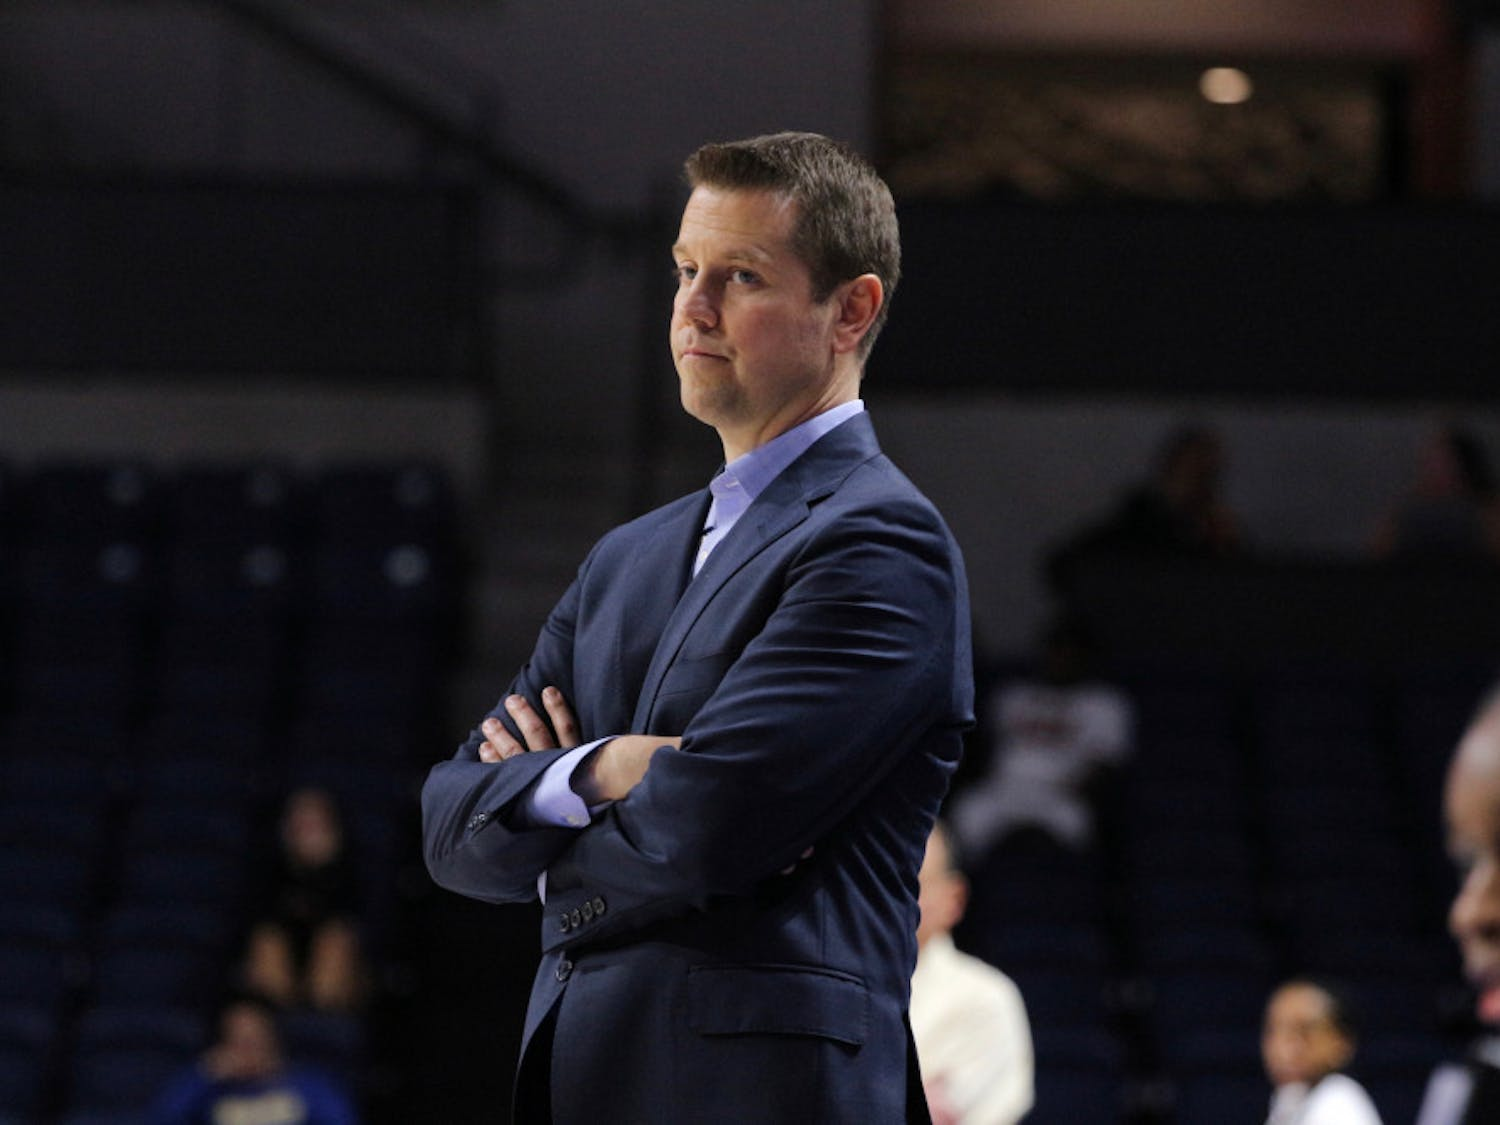 """Coach Cameron Newbauer said even with mounting loses, he's happy with the mentality of his team.""""They've bought into just being the best we can every moment and not playing the scoreboard,"""" he said."""